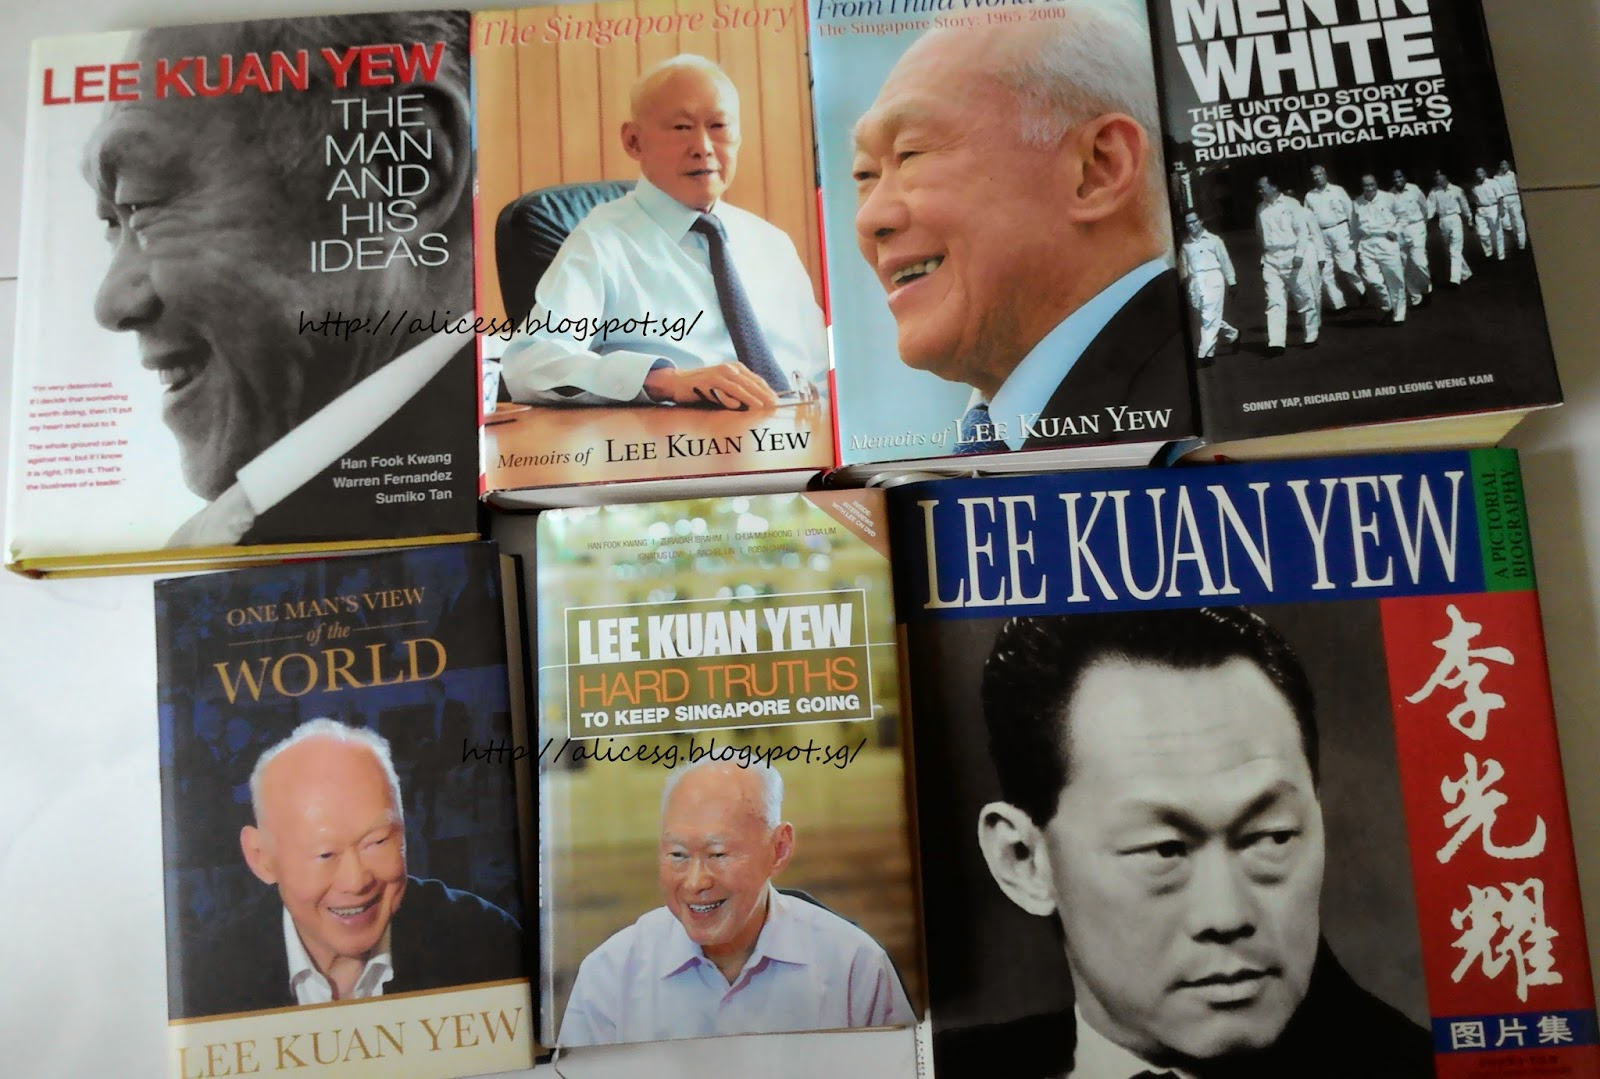 Lee Kuan Yew. Sumber: http://alicesg.blogspot.com